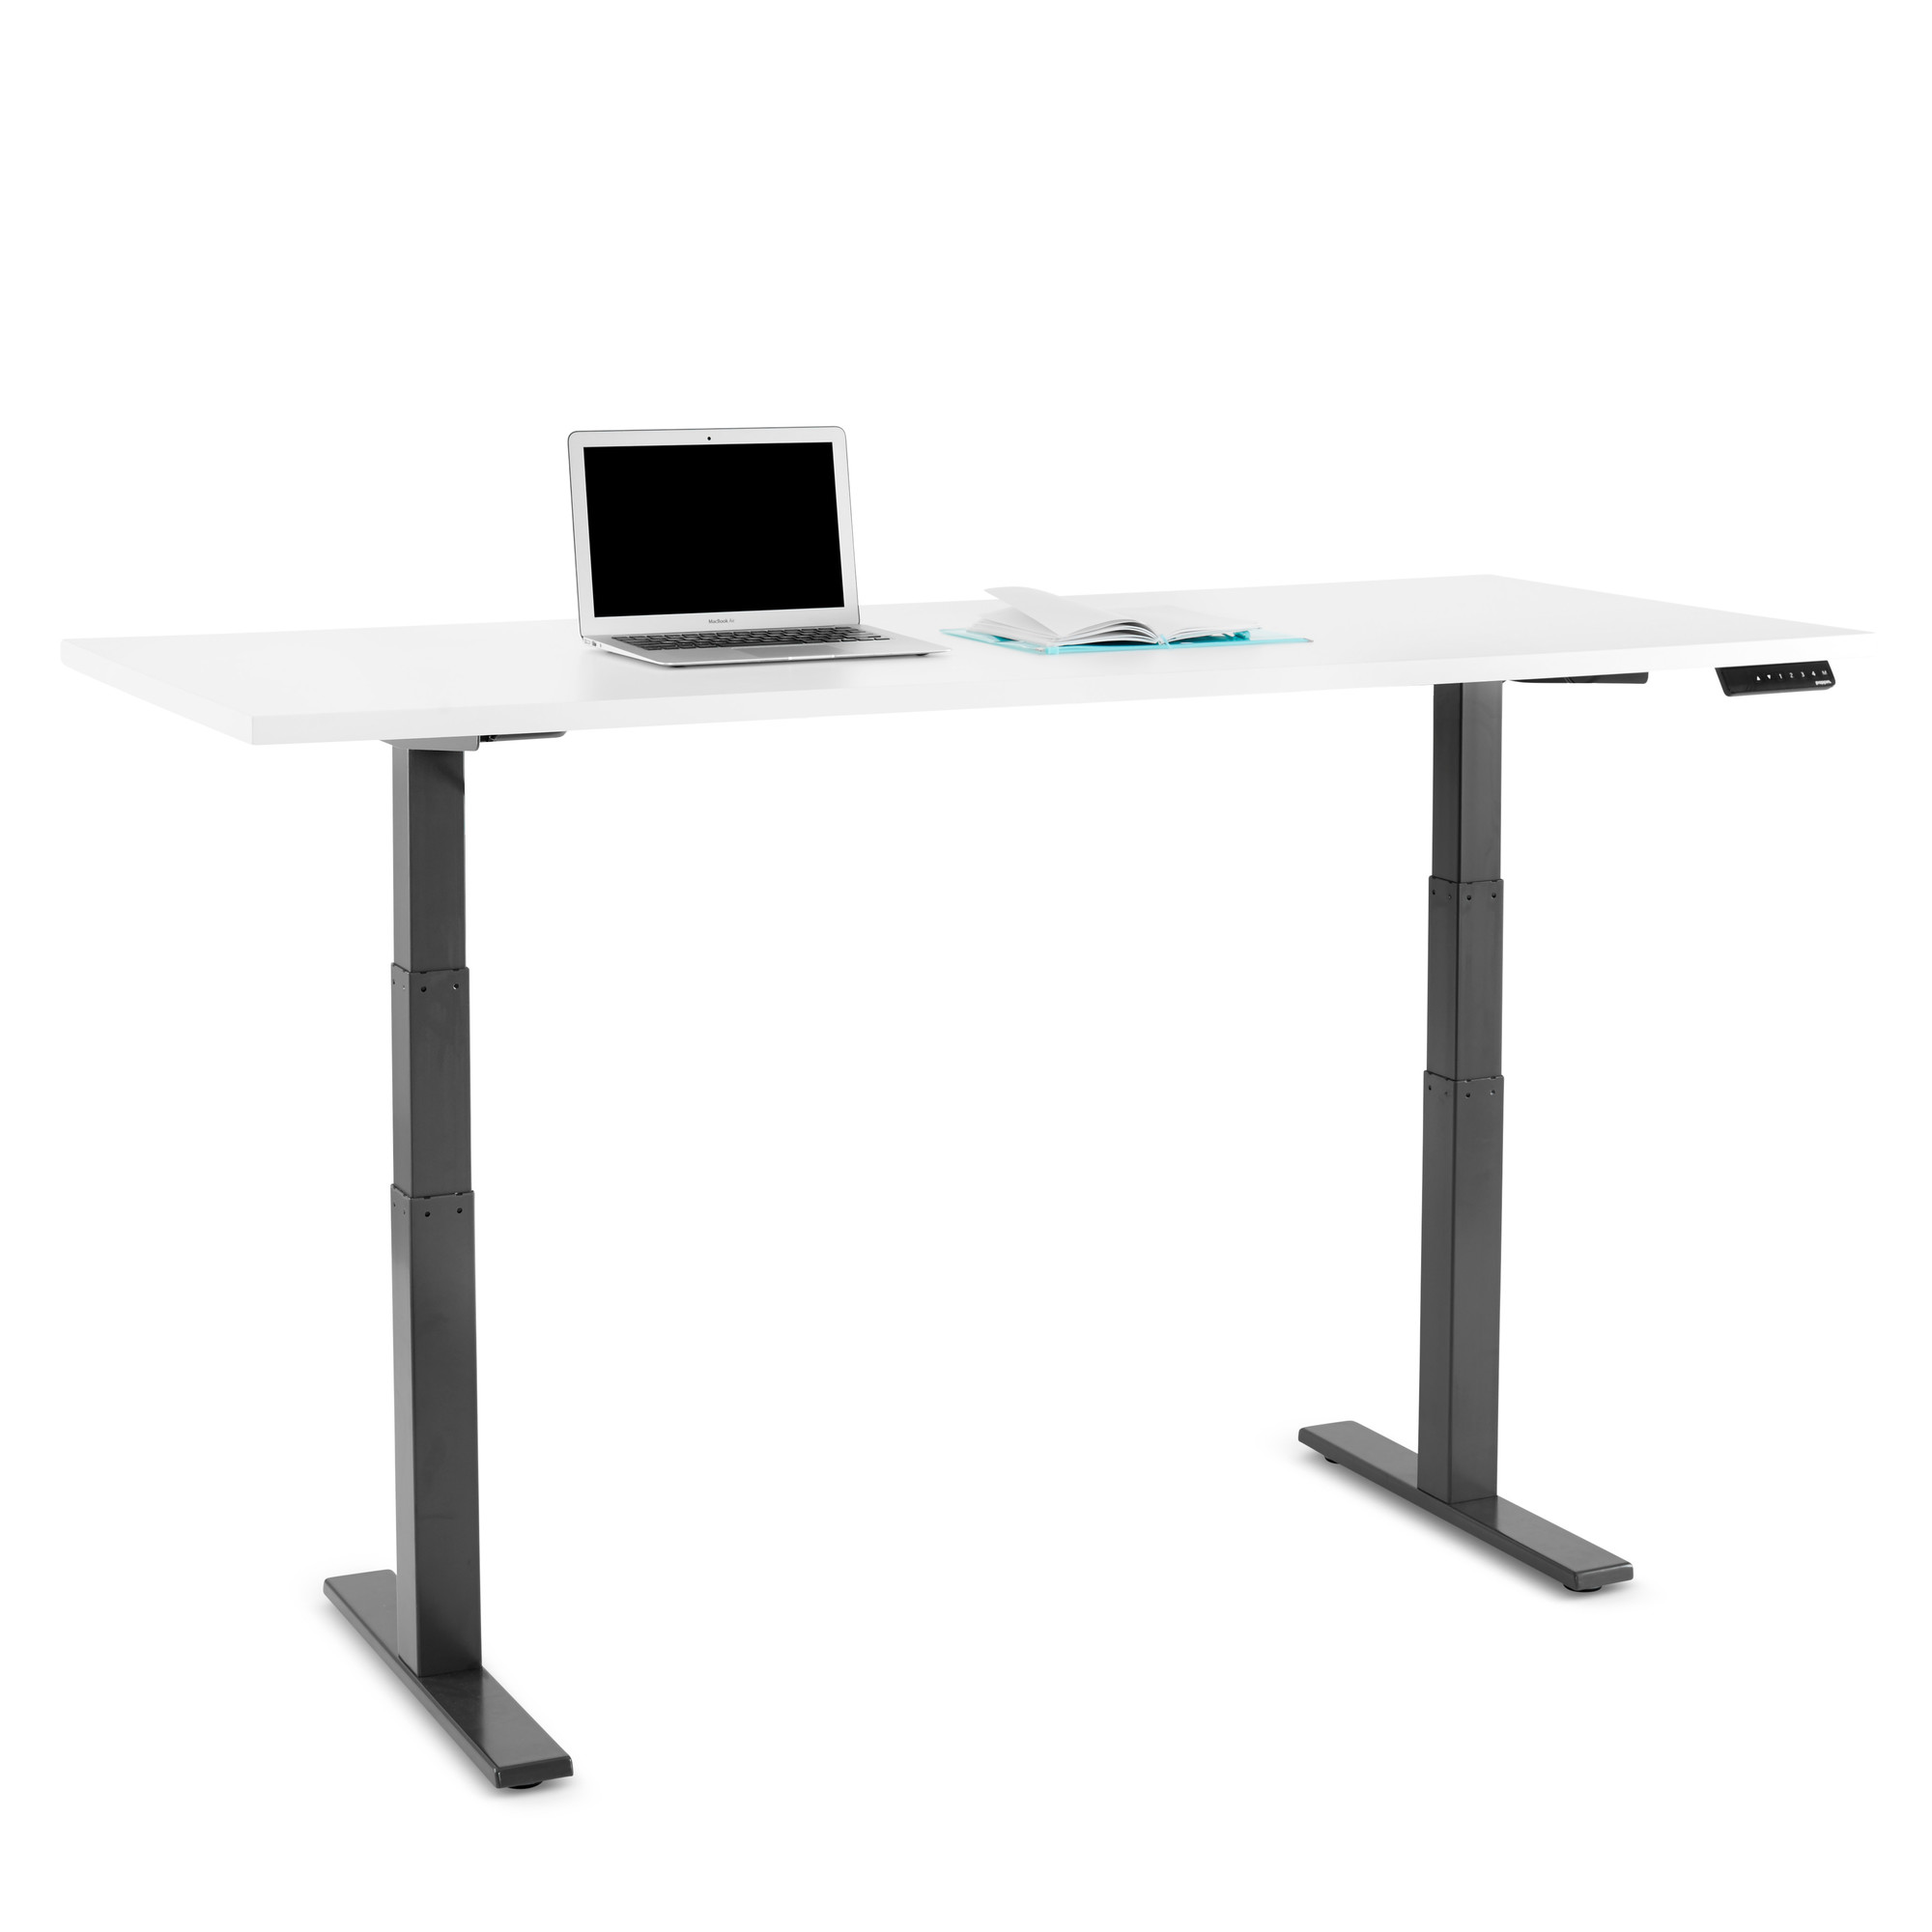 Adjustable Height Drafting Table Series L Adjustable Height Table Charcoal Legs Adjustable Height Desks Poppin